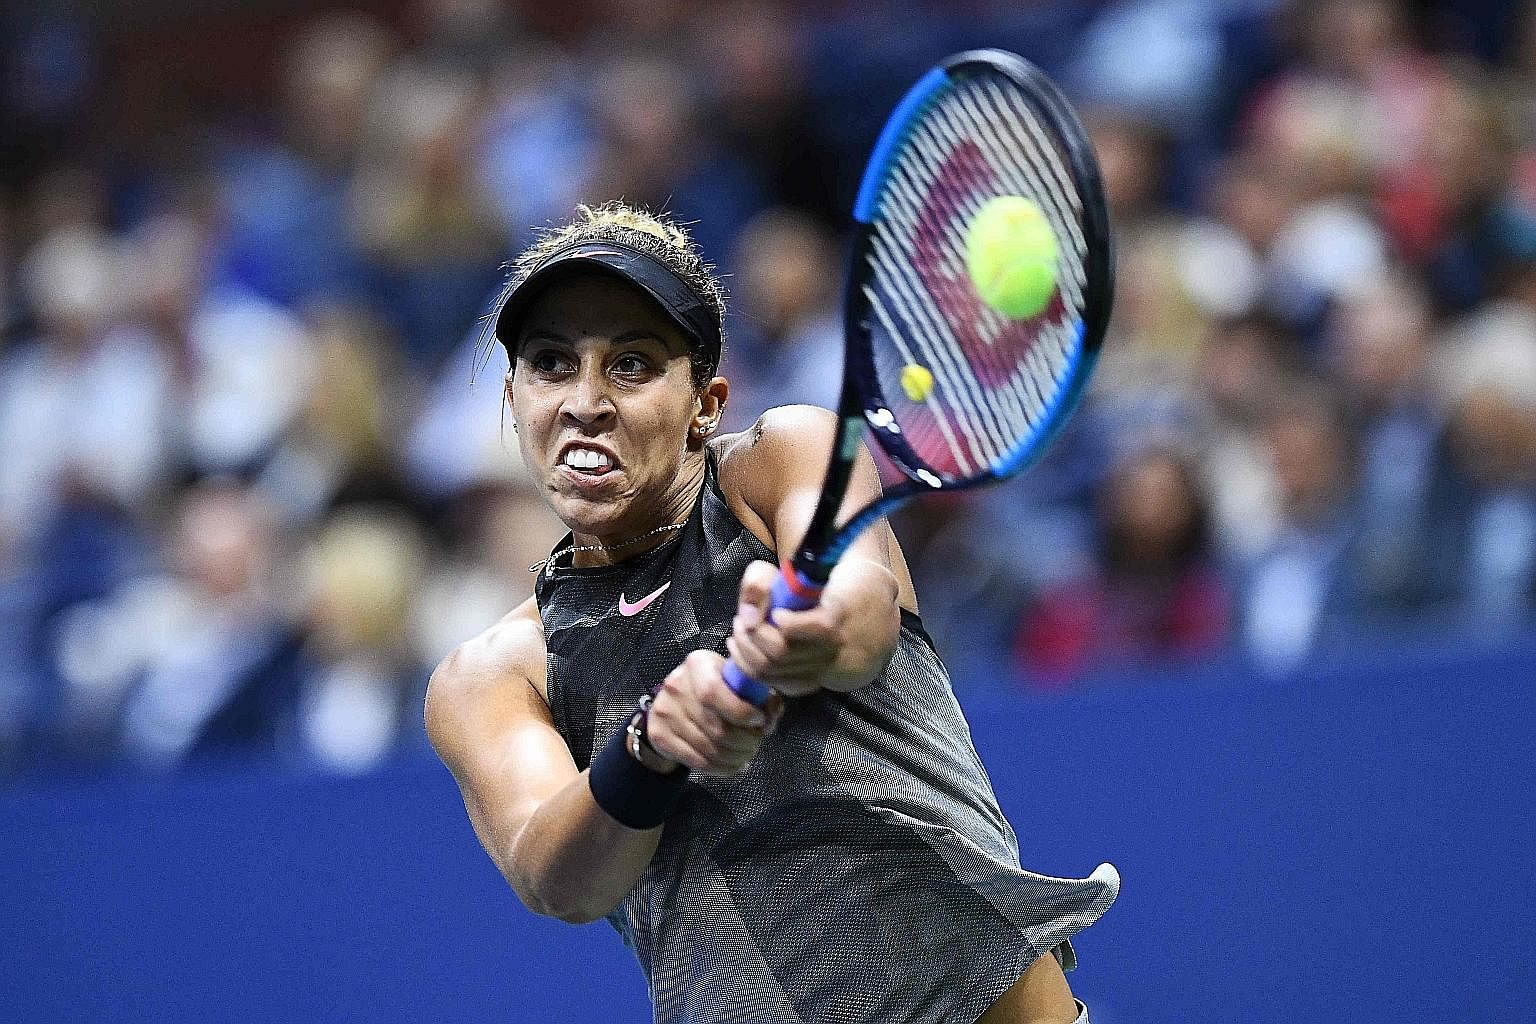 Madison Keys hitting a backhand en route to defeating fellow American CoCo Vandeweghe at the US Open to make her first Major final.